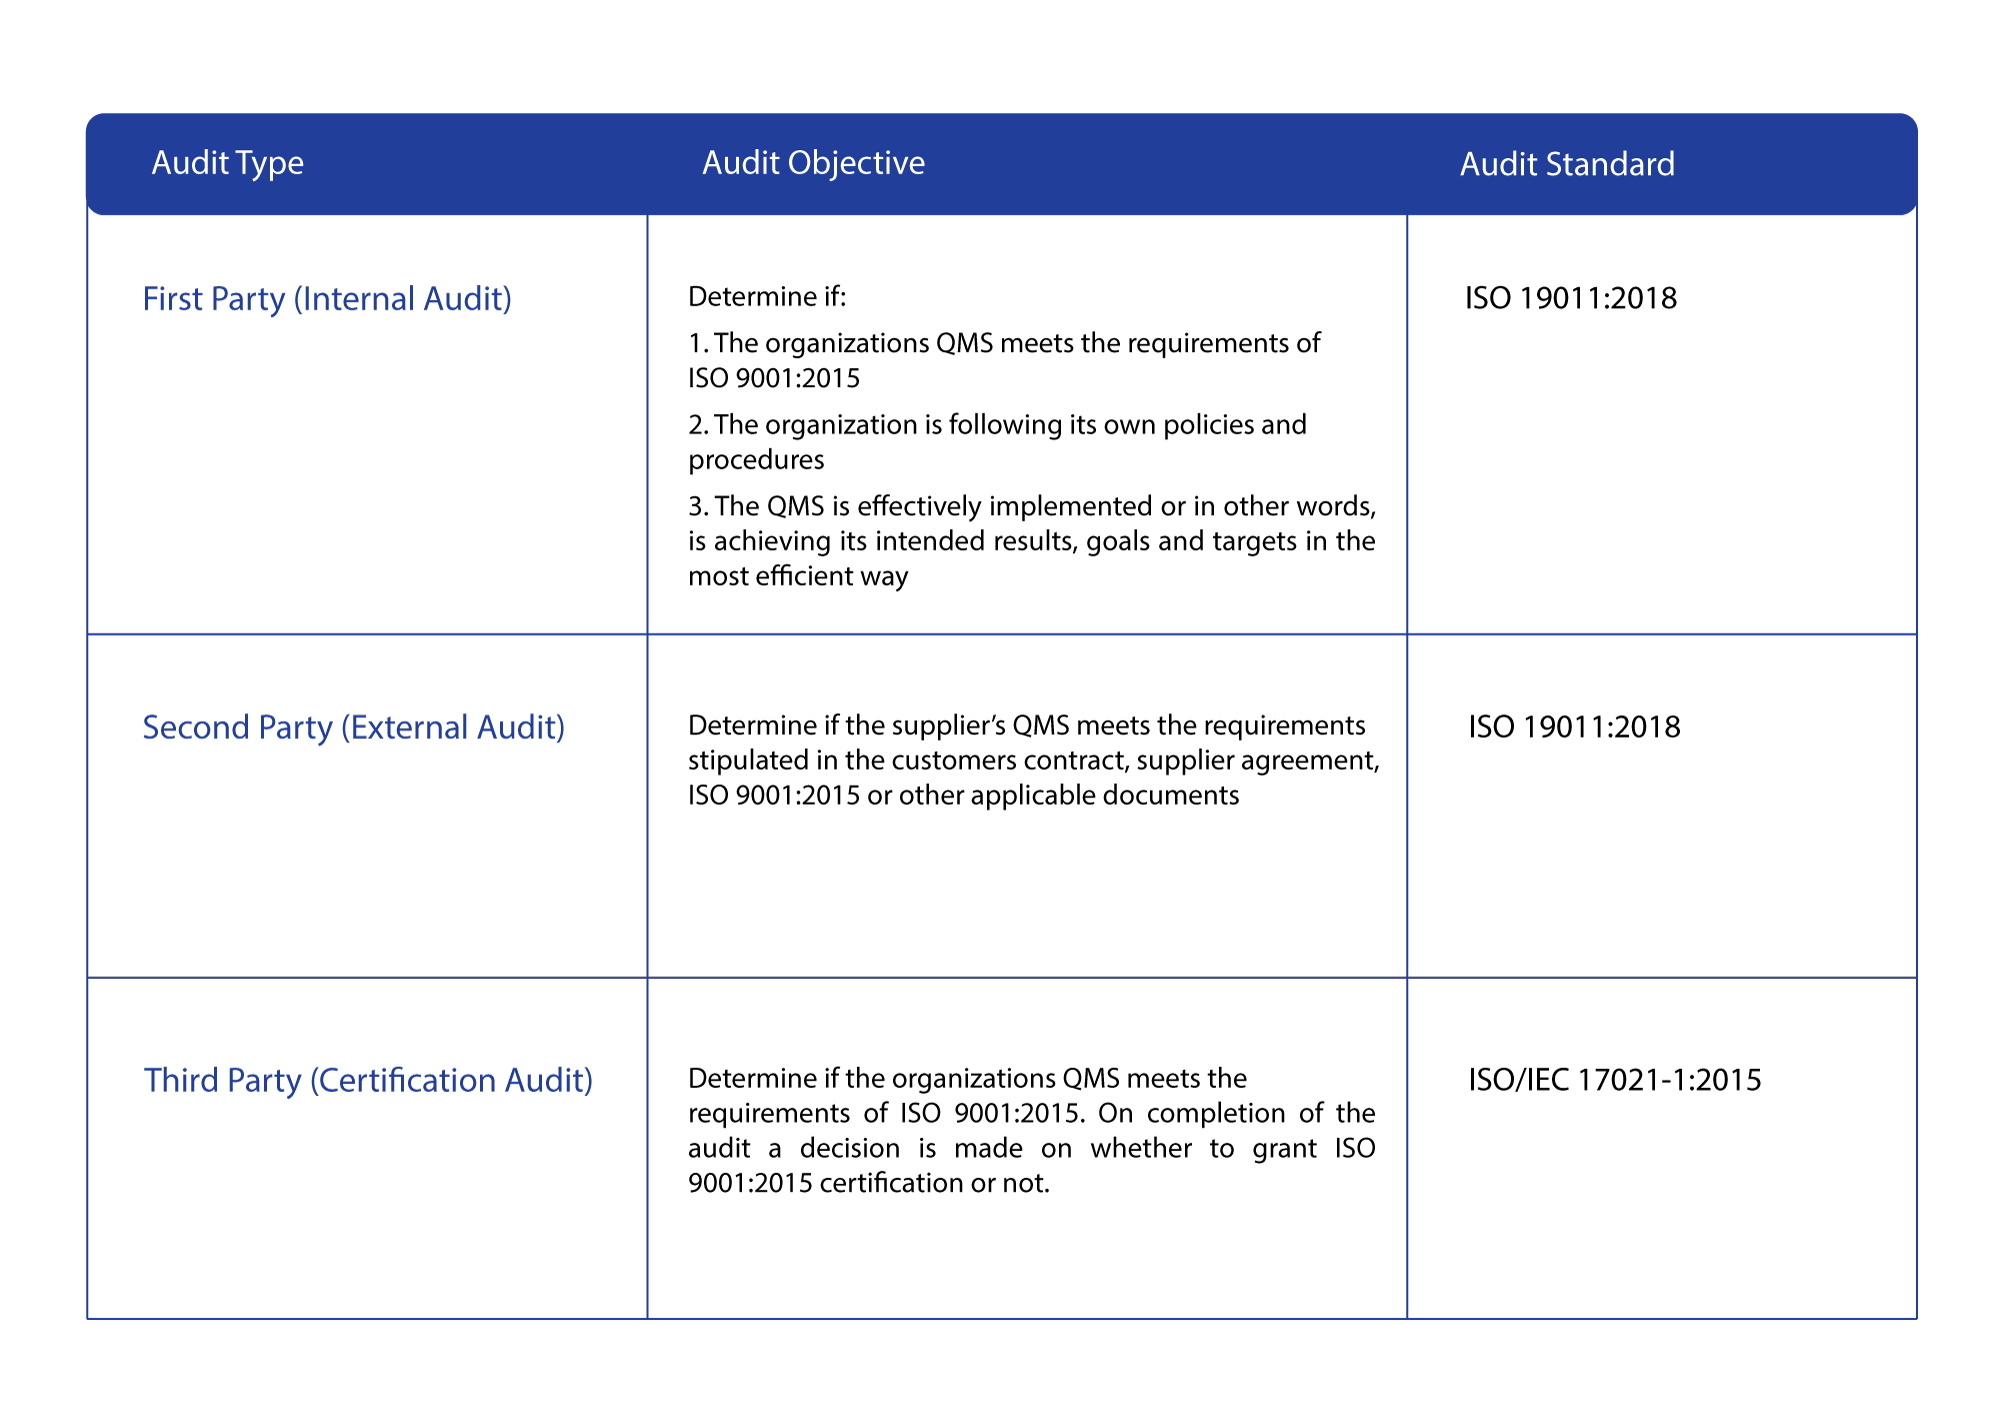 Table of Audit Types